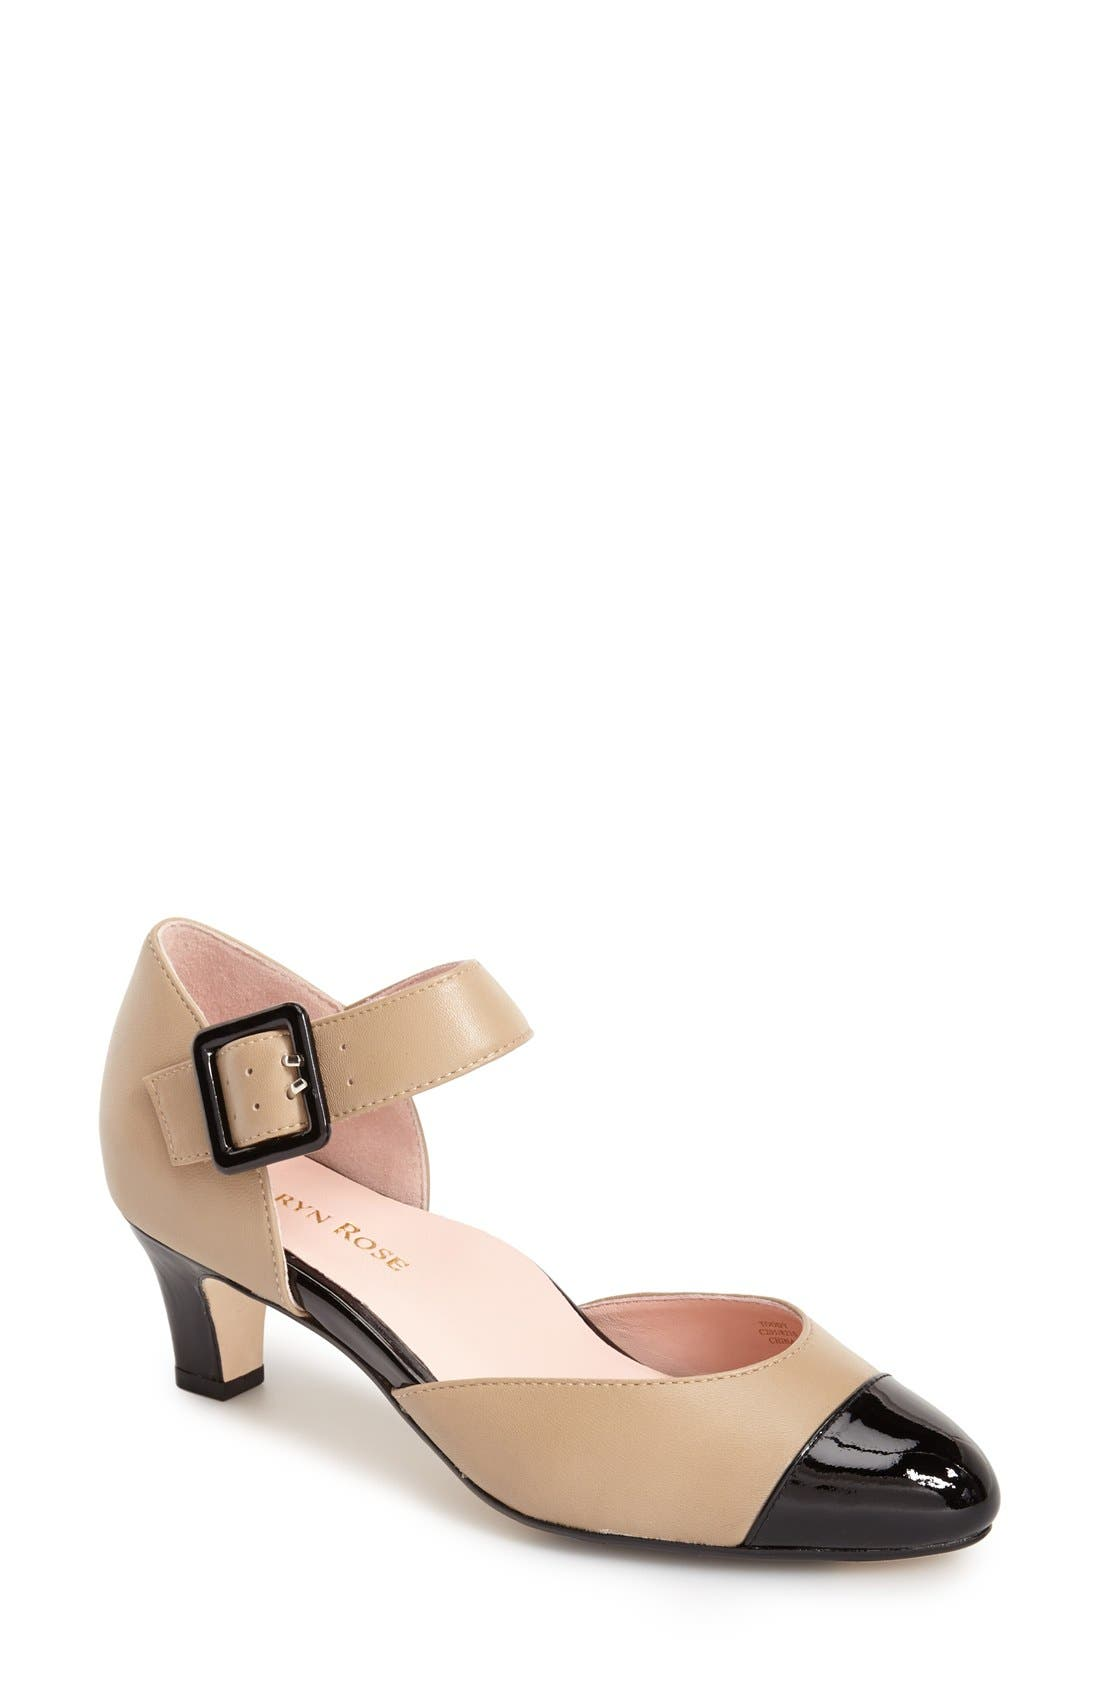 Main Image - Taryn Rose 'Toody Leather d'Orsay' Pump (Women)